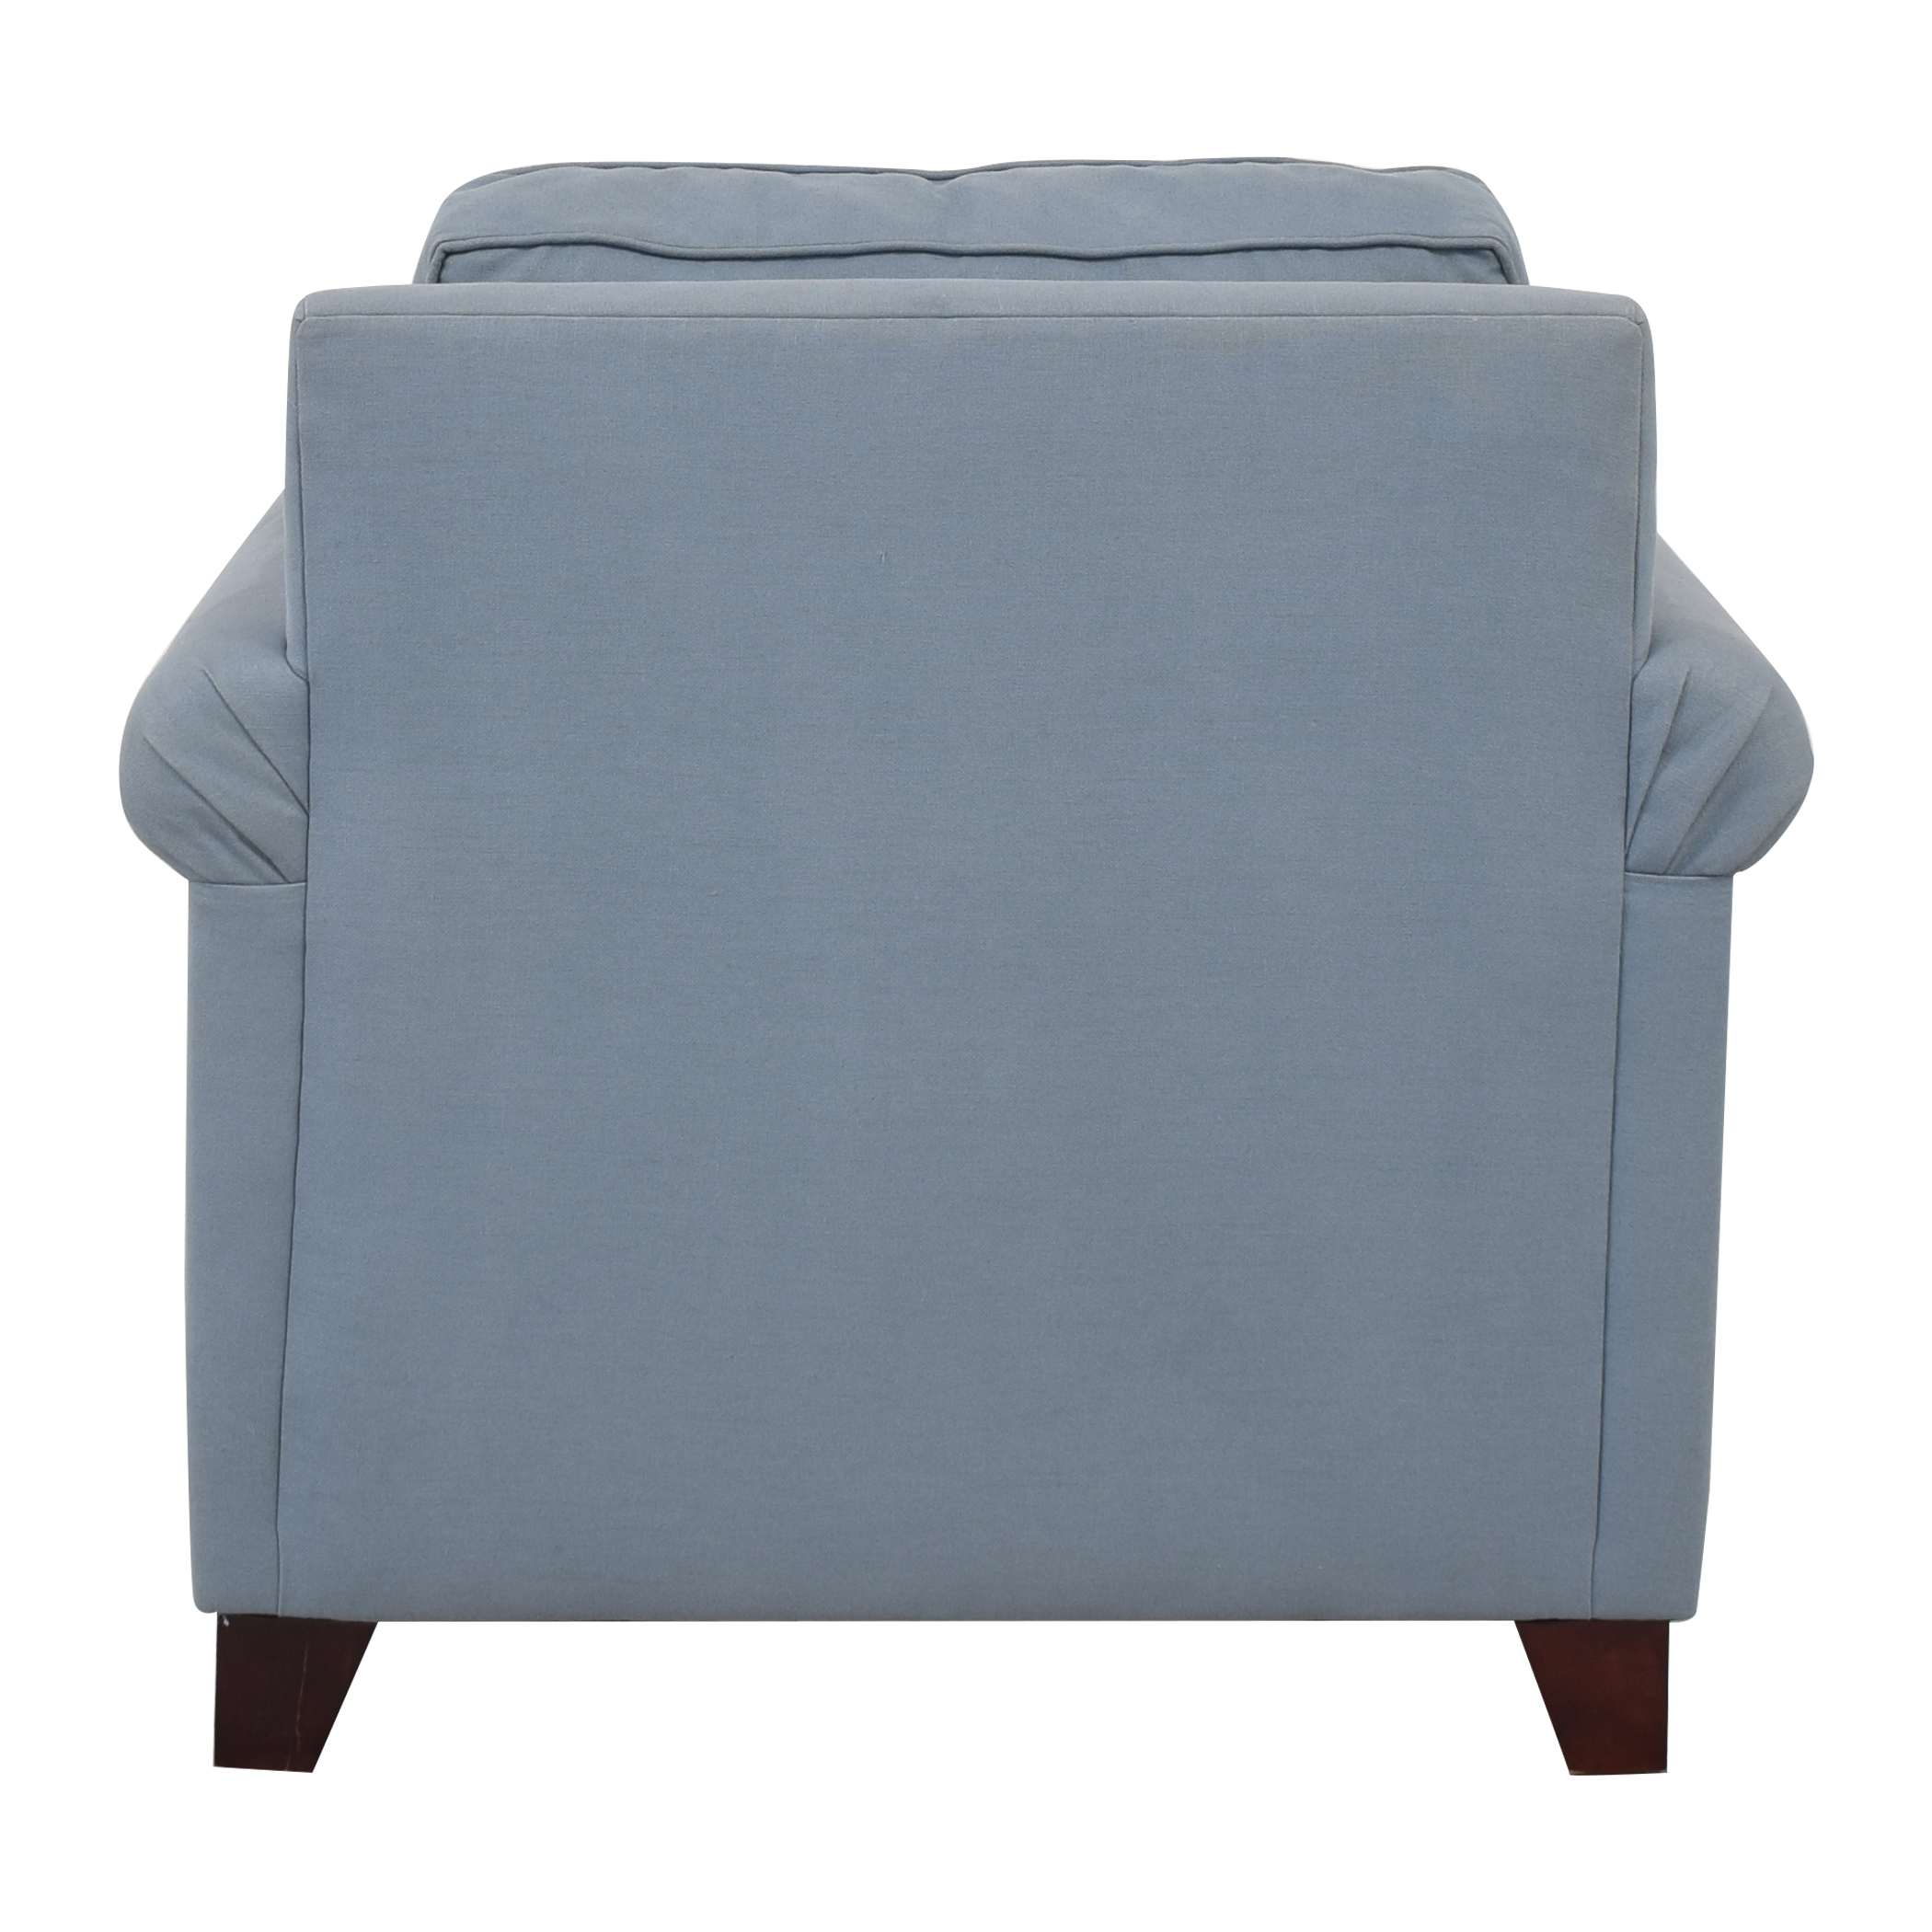 buy Pottery Barn Cameron Upholstered Roll Arm Chair Pottery Barn